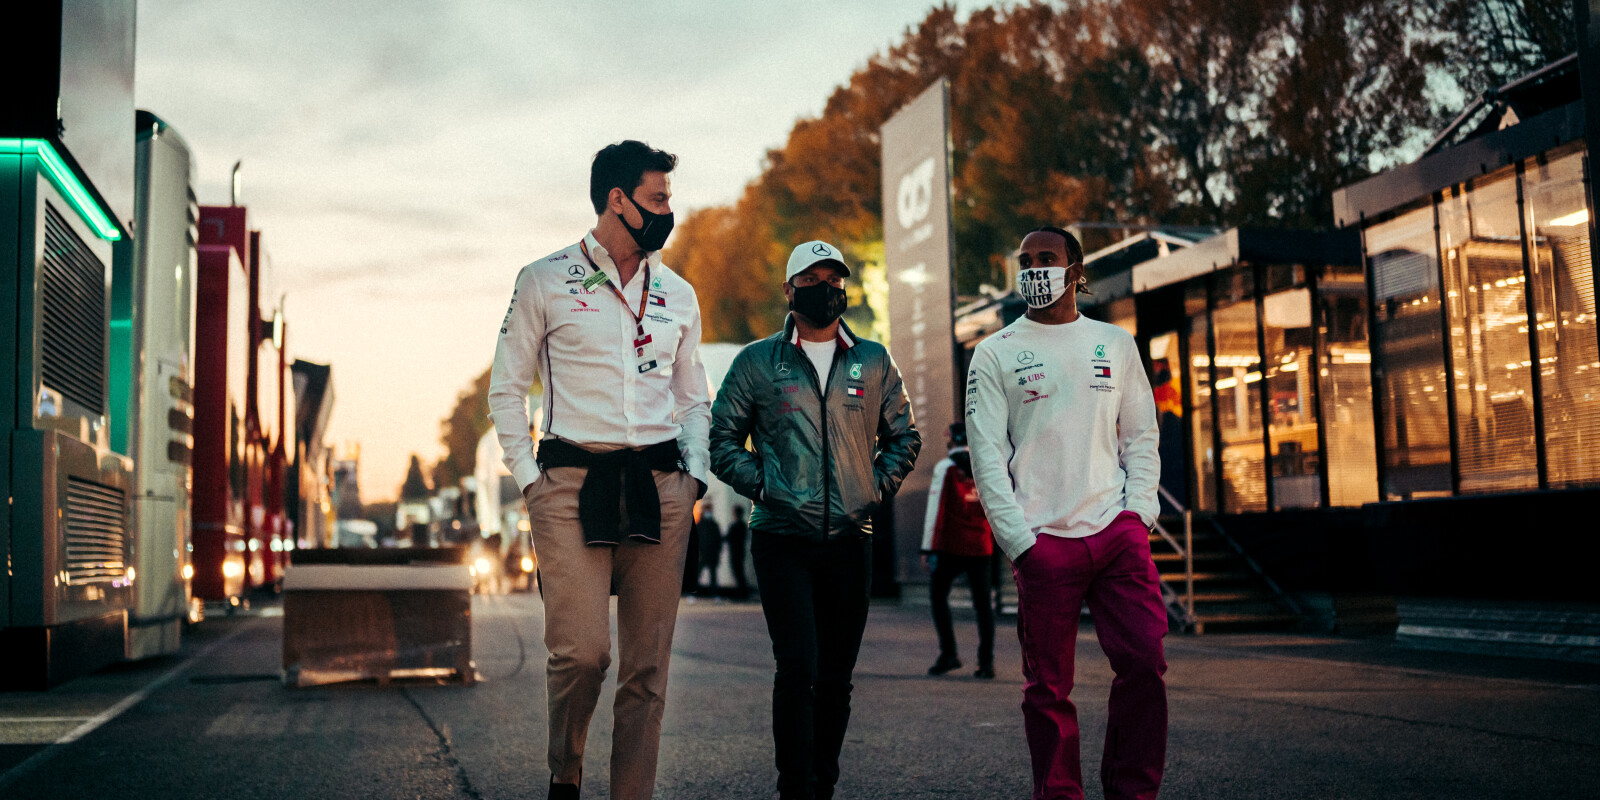 Images from round 13 of the 2020 F1 World Championship - Emilia Romagna (San Marino)